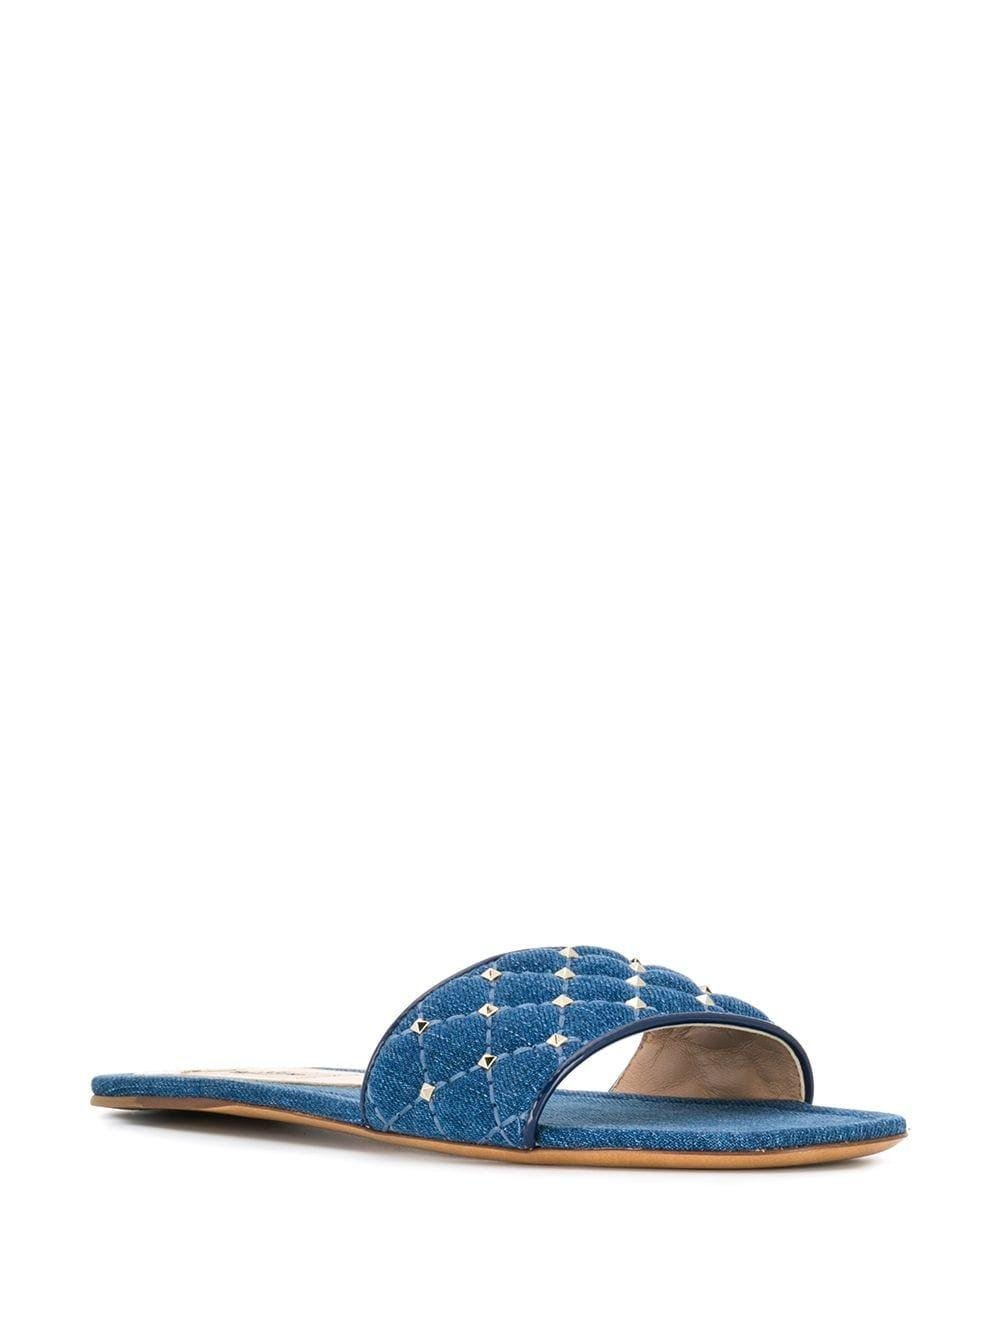 61bad6019a4e Lyst - Valentino Garavani Rockstud Denim Sandals in Blue